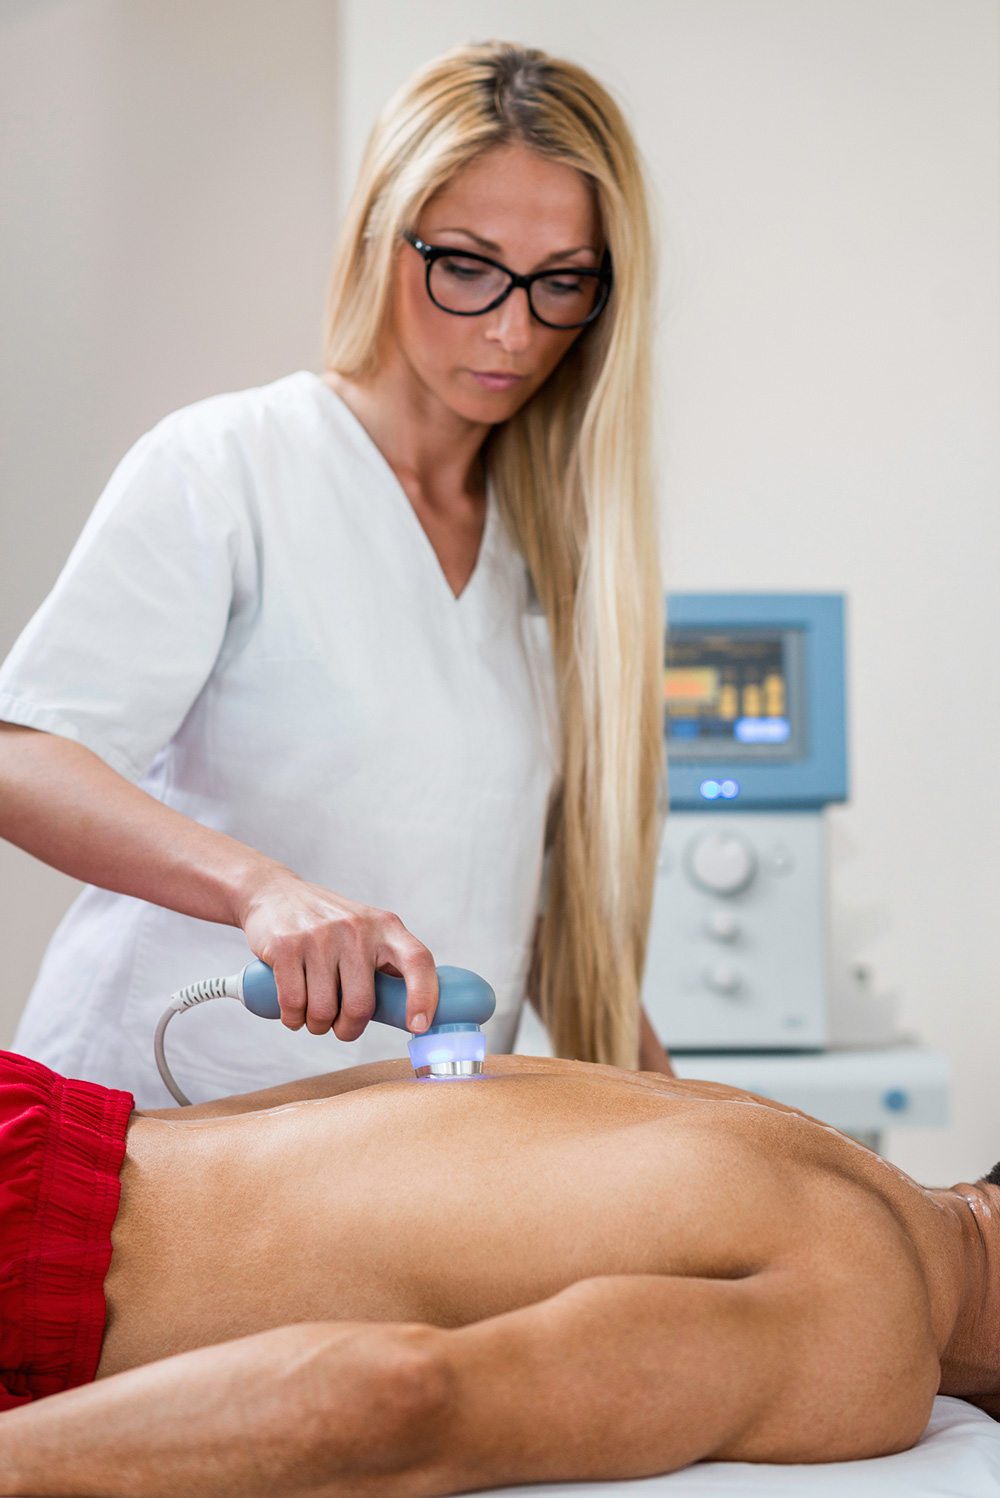 Silver Chiropractic Centre Ultrasound